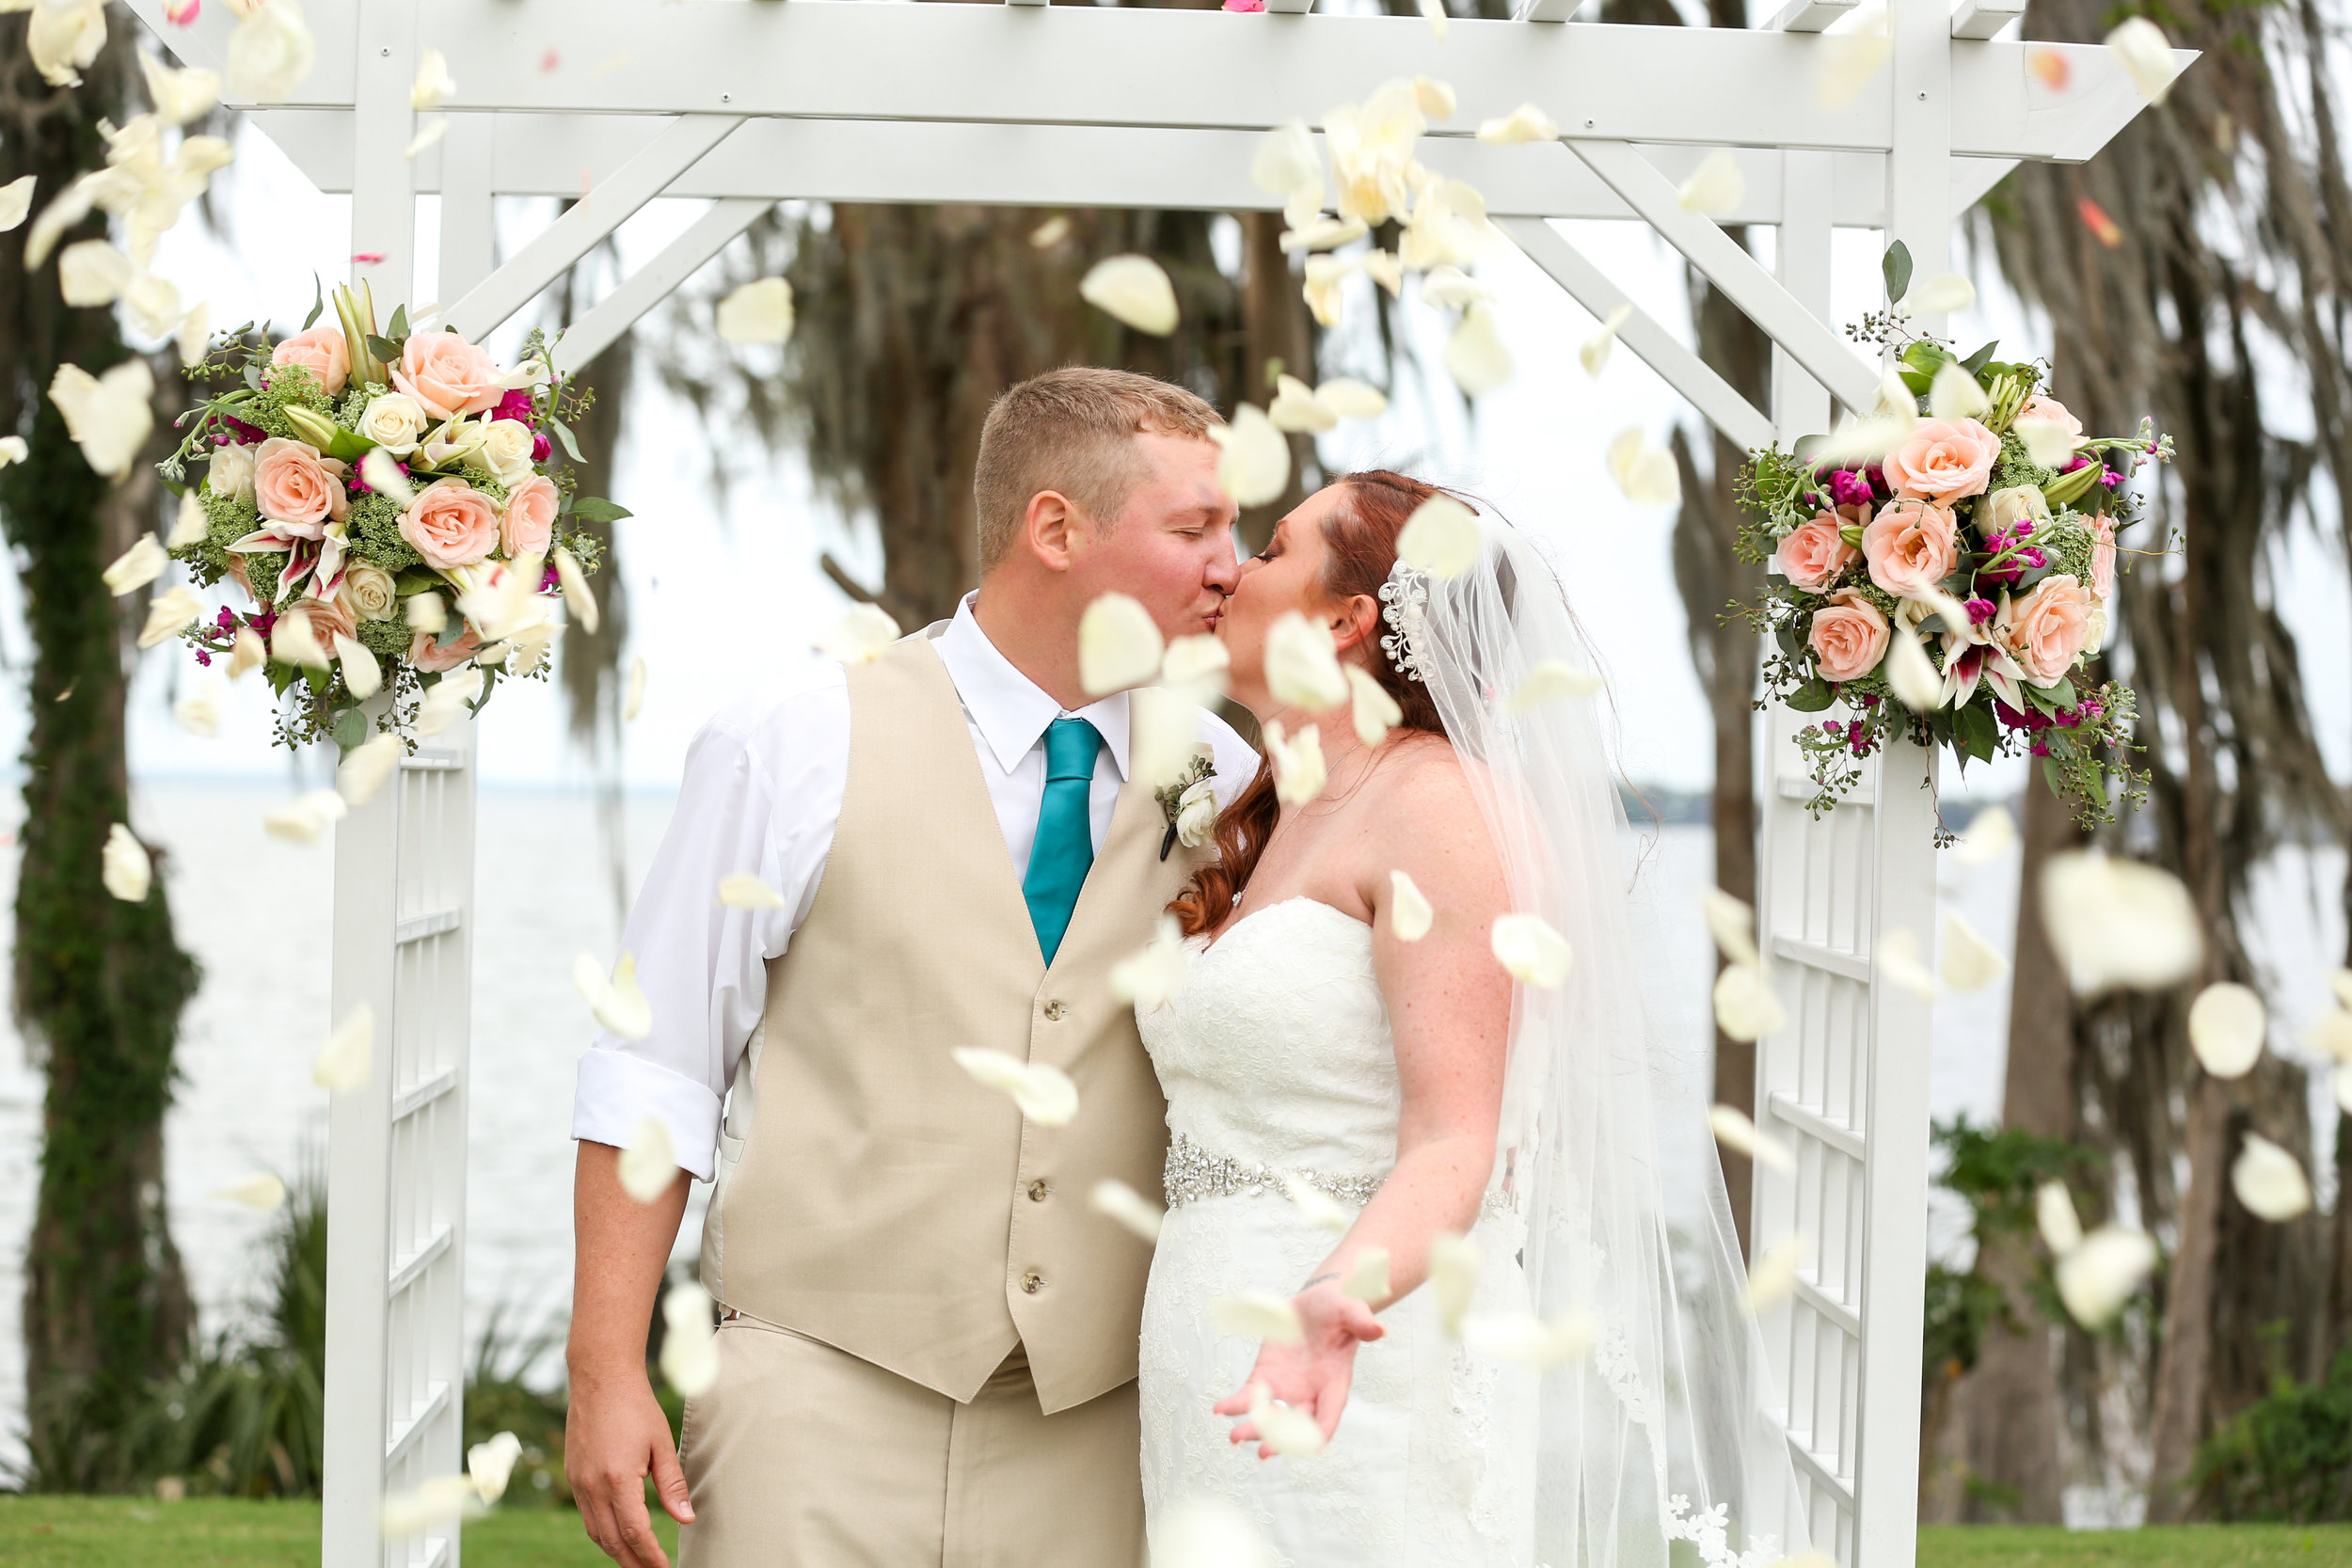 orlando-wedding-photographer-www.livehappystudio.com-mission-inn-flowers-outdoor-lake-marina-del-rey.jpg